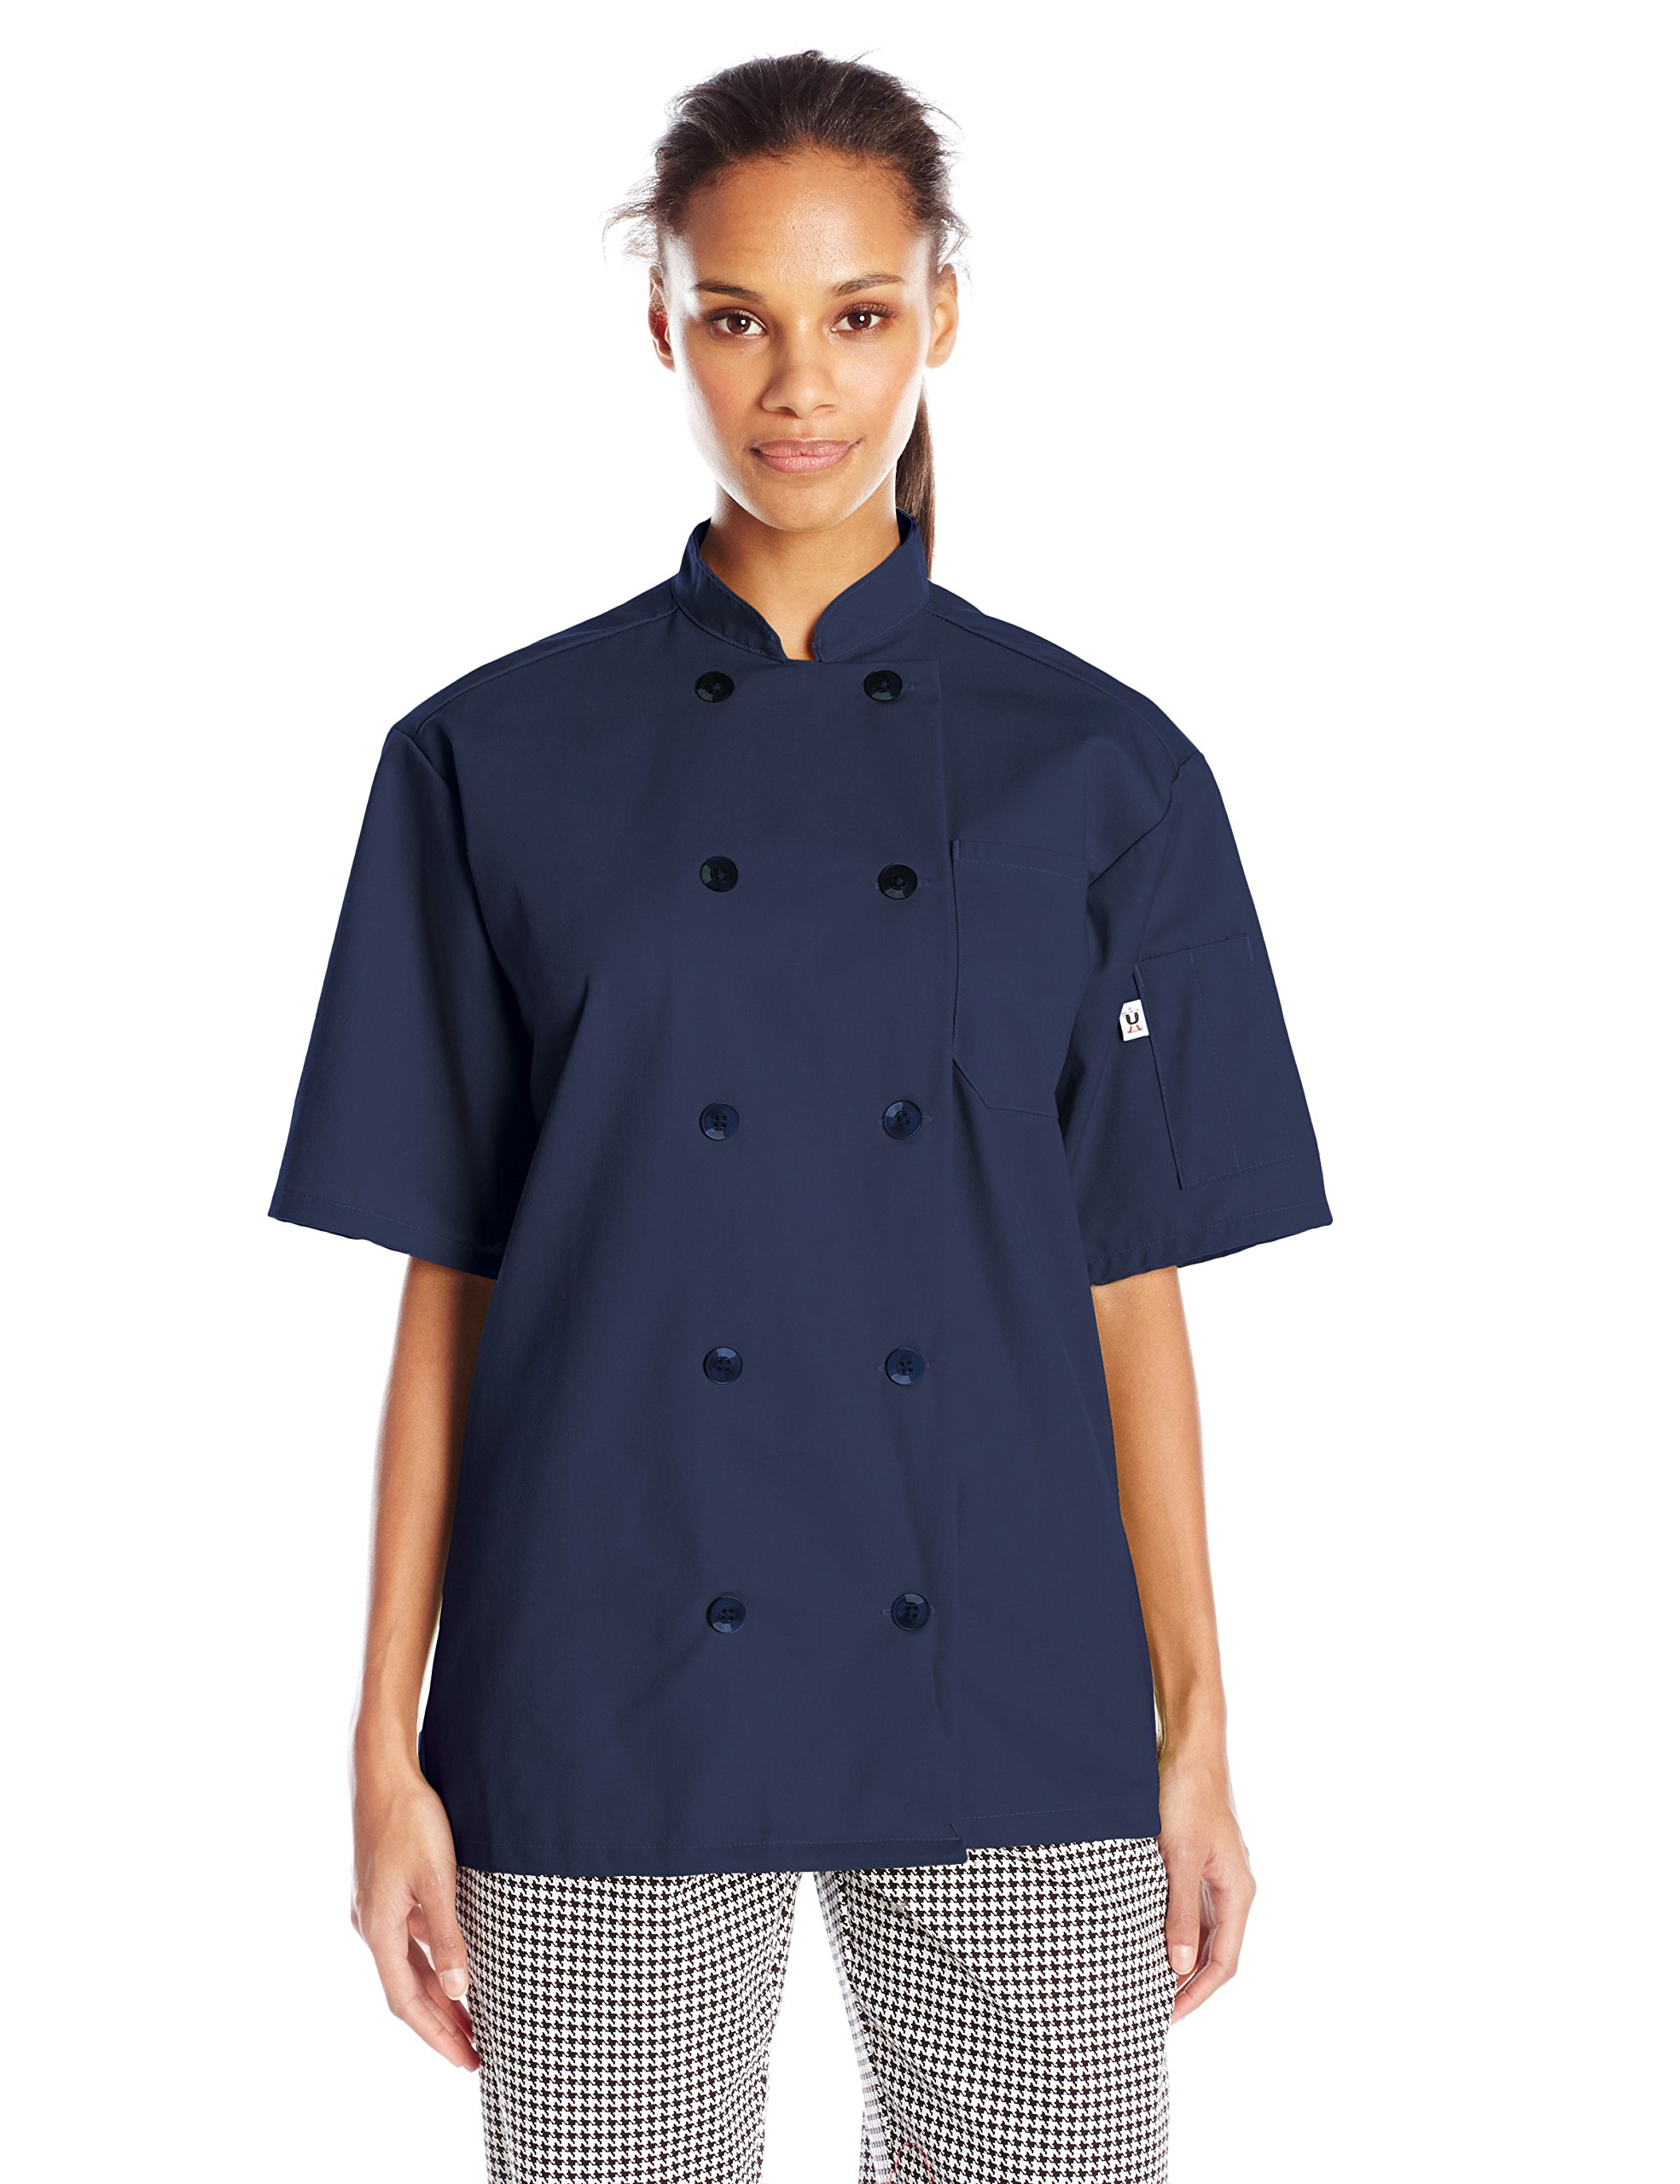 Uncommon Threads Unisex South Beach Chef Coat Short Sleeves, Navy, Medium by Uncommon Threads